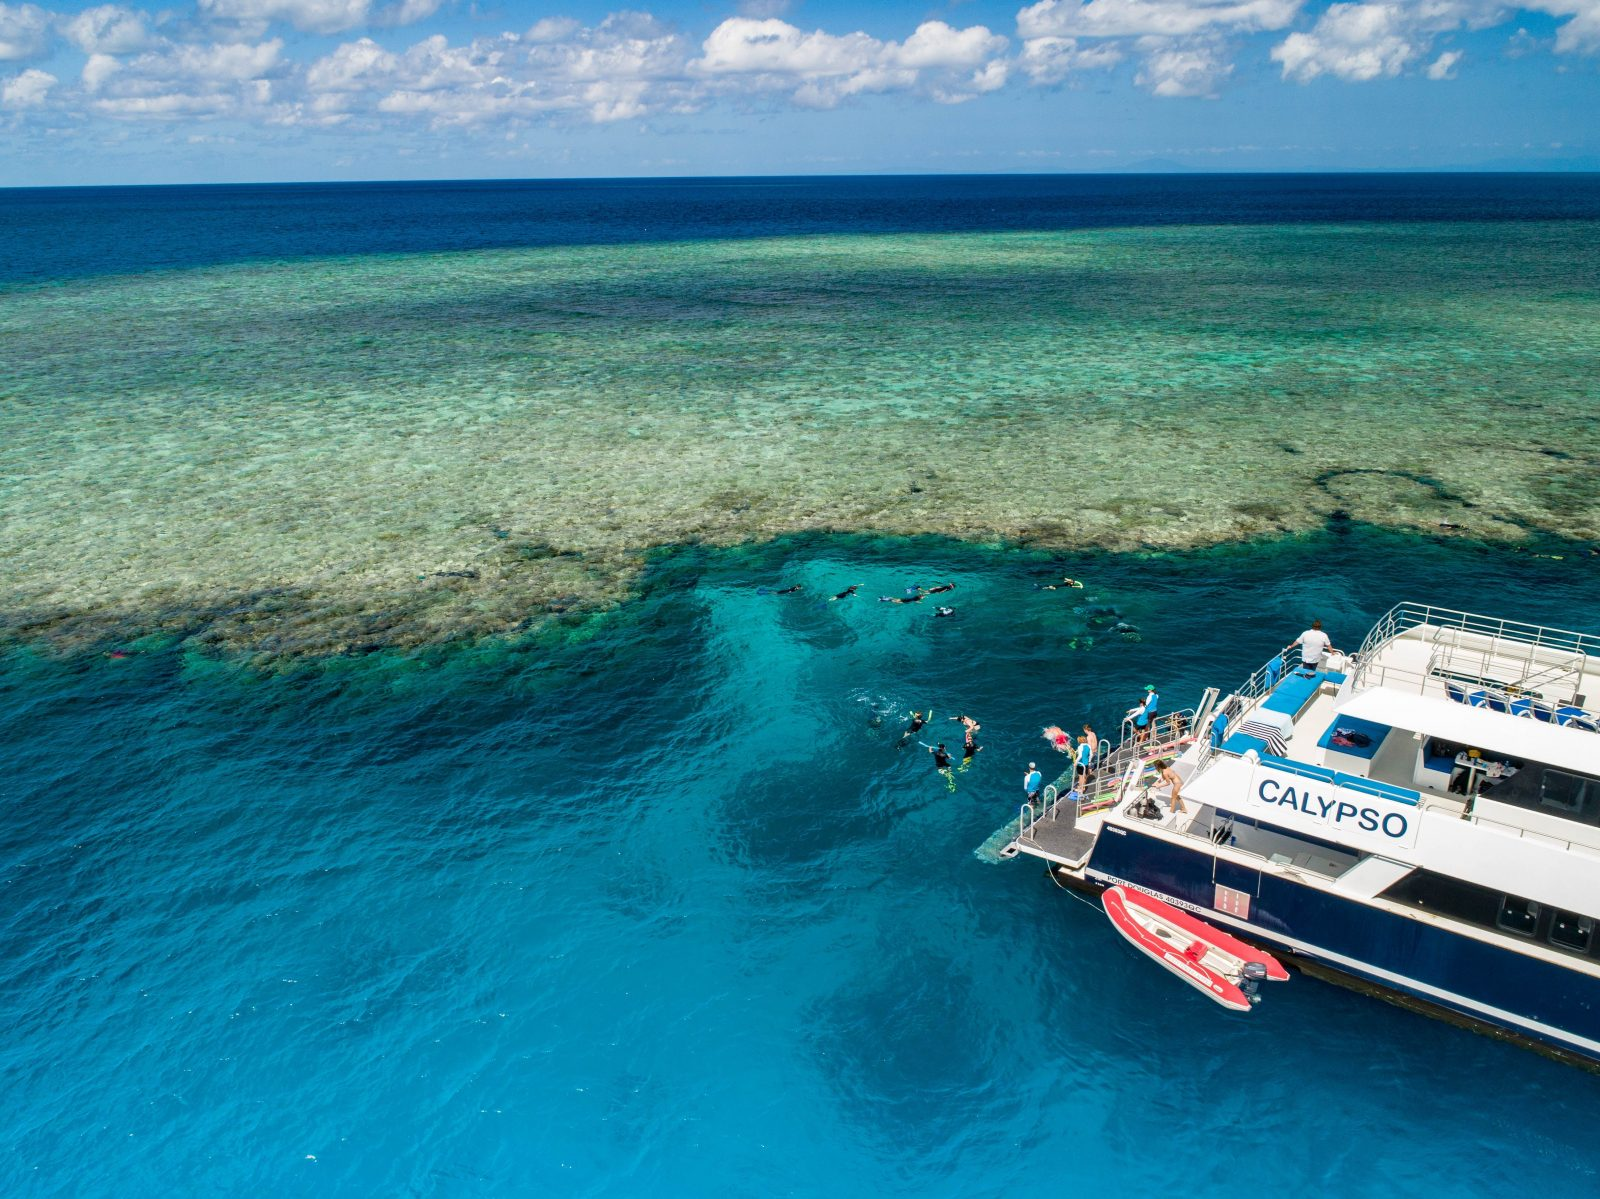 Calypso Outer Barrier Reef